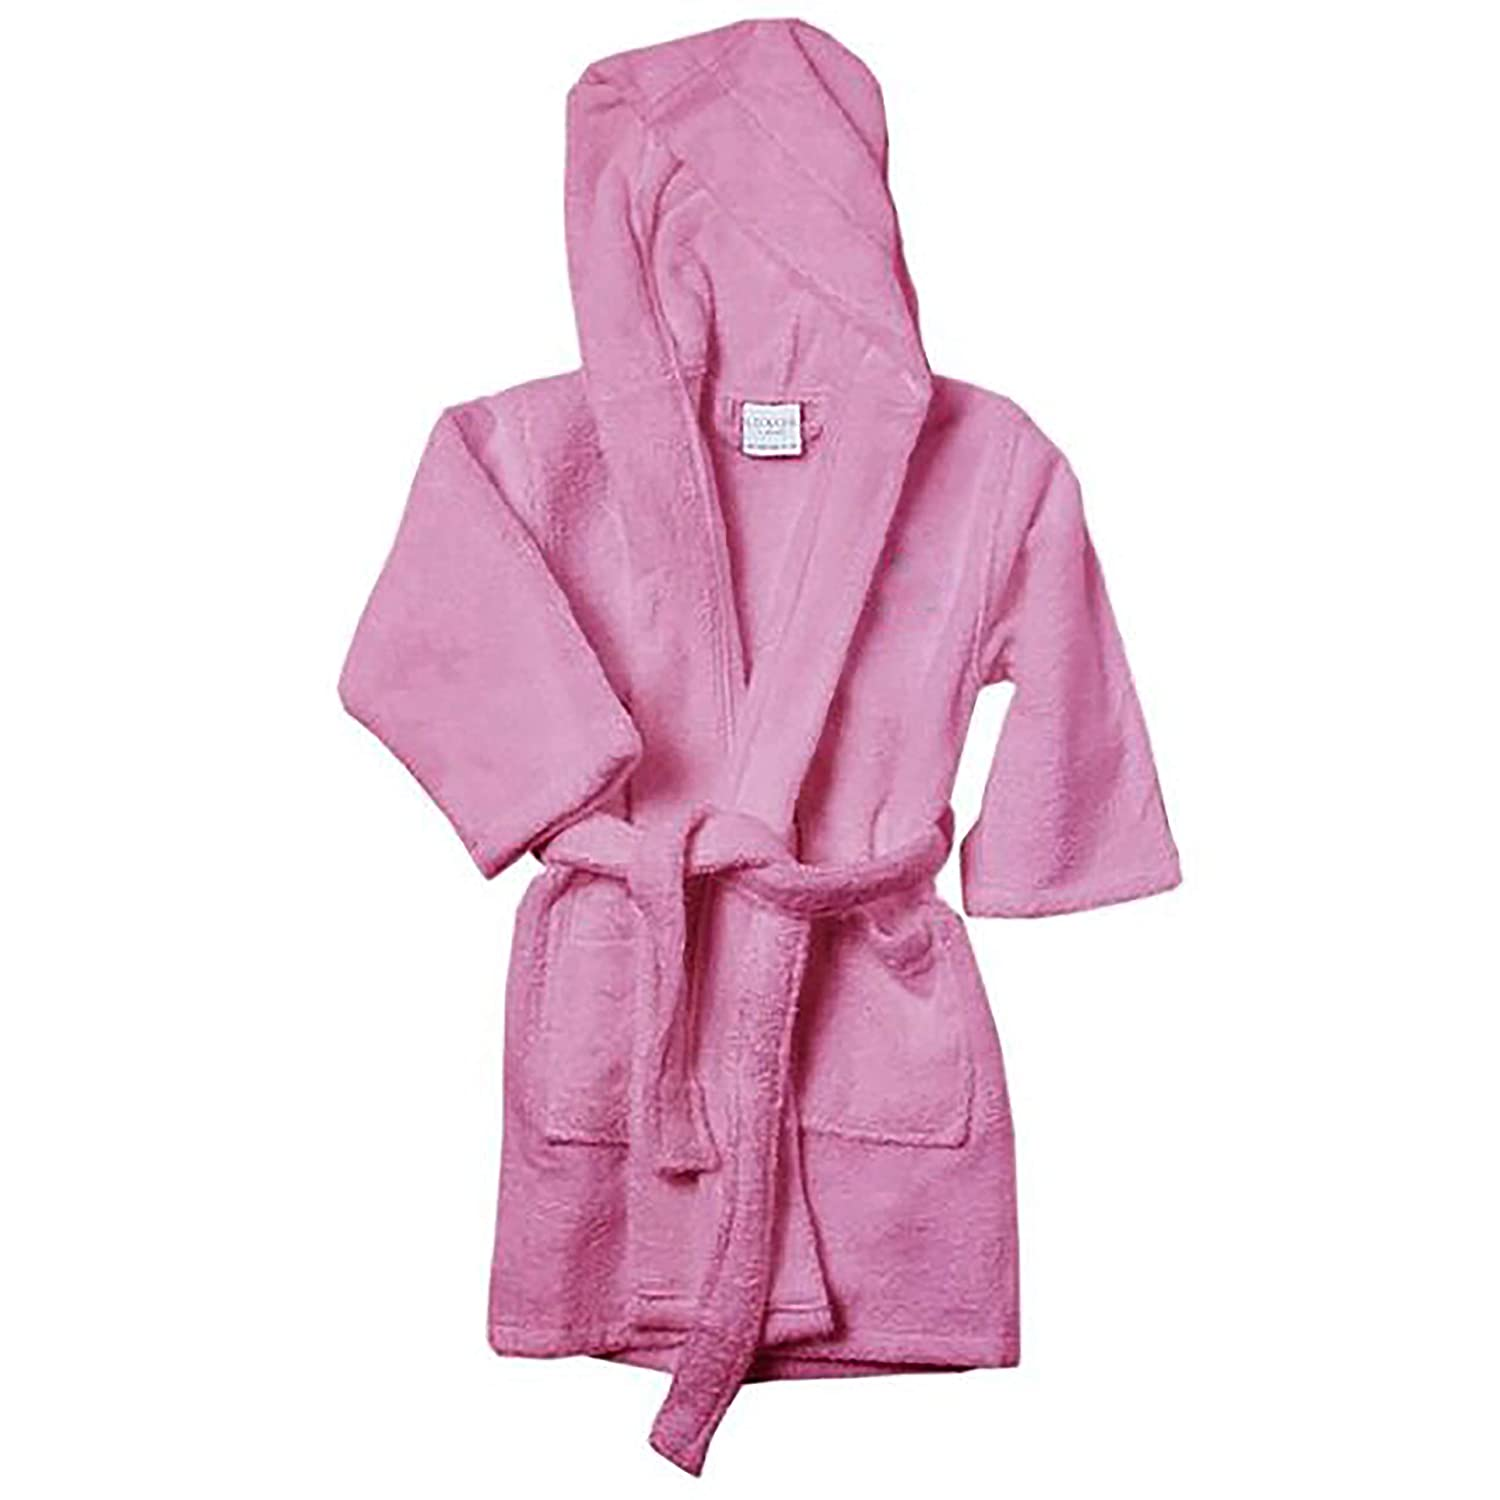 Luxor Linens Kids Robe - Luxury Hooded Bathrobe for Girls and Boys and 100% Egyptian Cotton (Pink, Large)